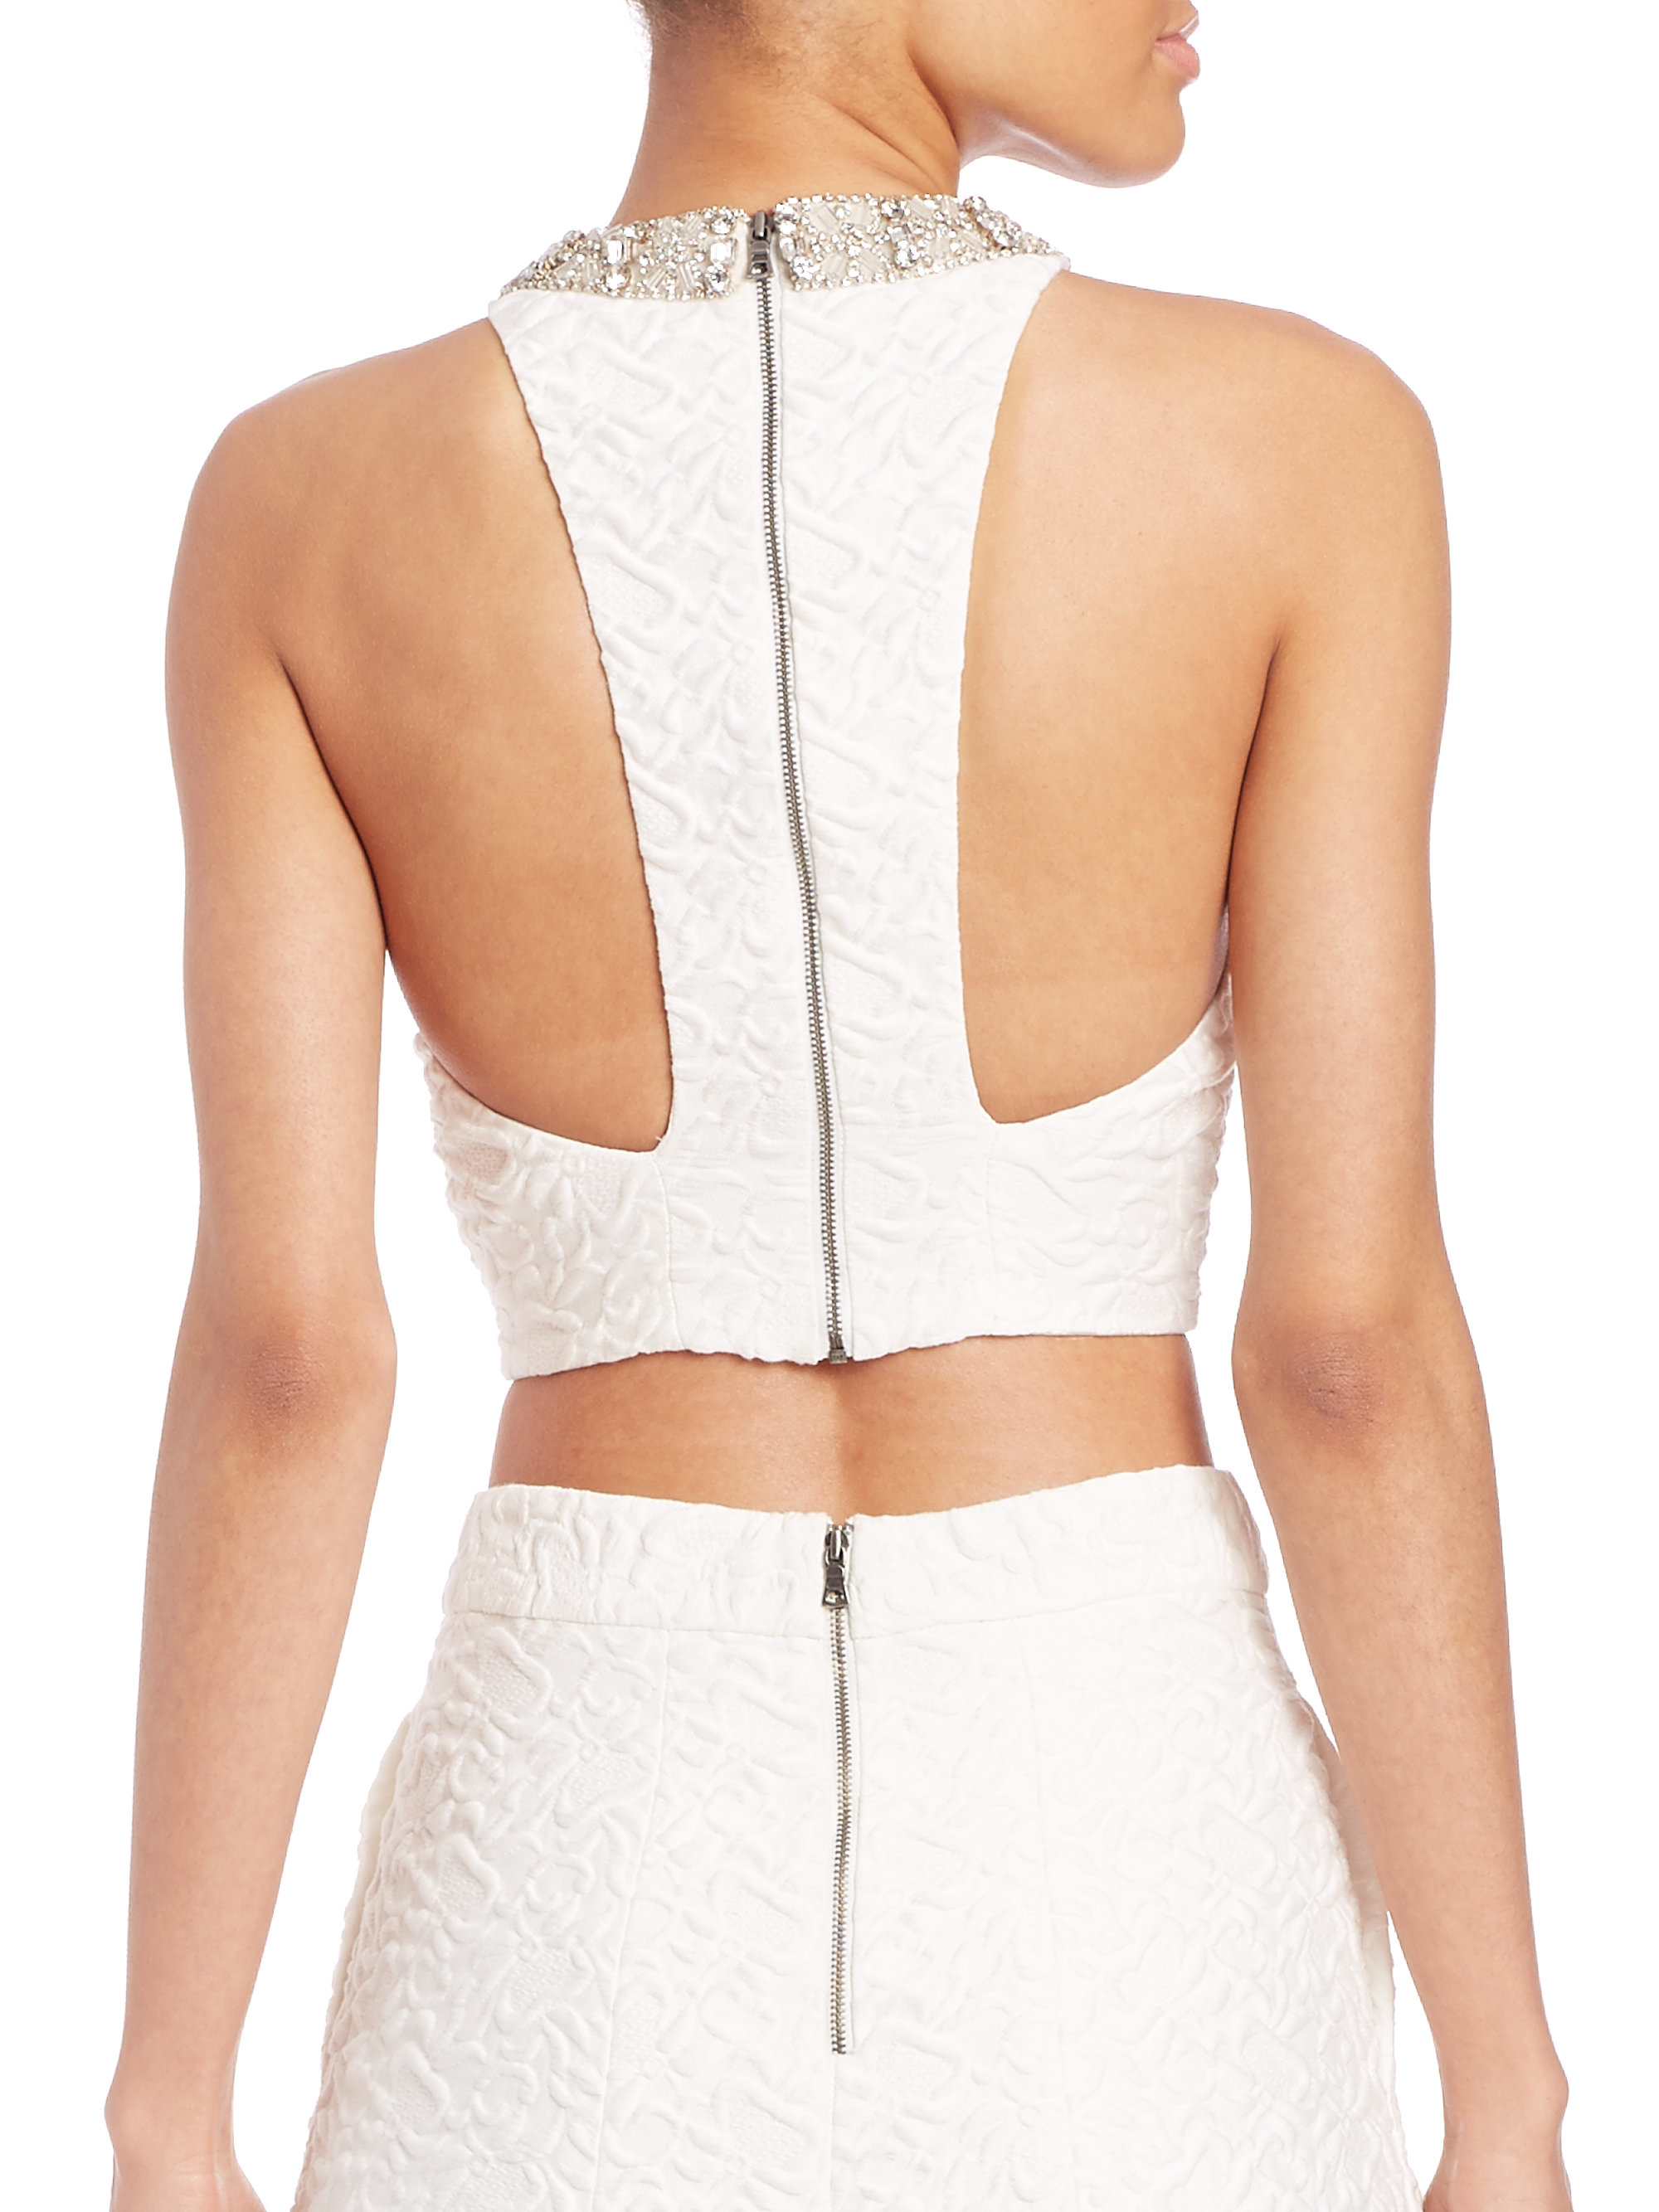 671c9928943b6 Lyst - Alice + Olivia Embellished Racerback Crop Top in White